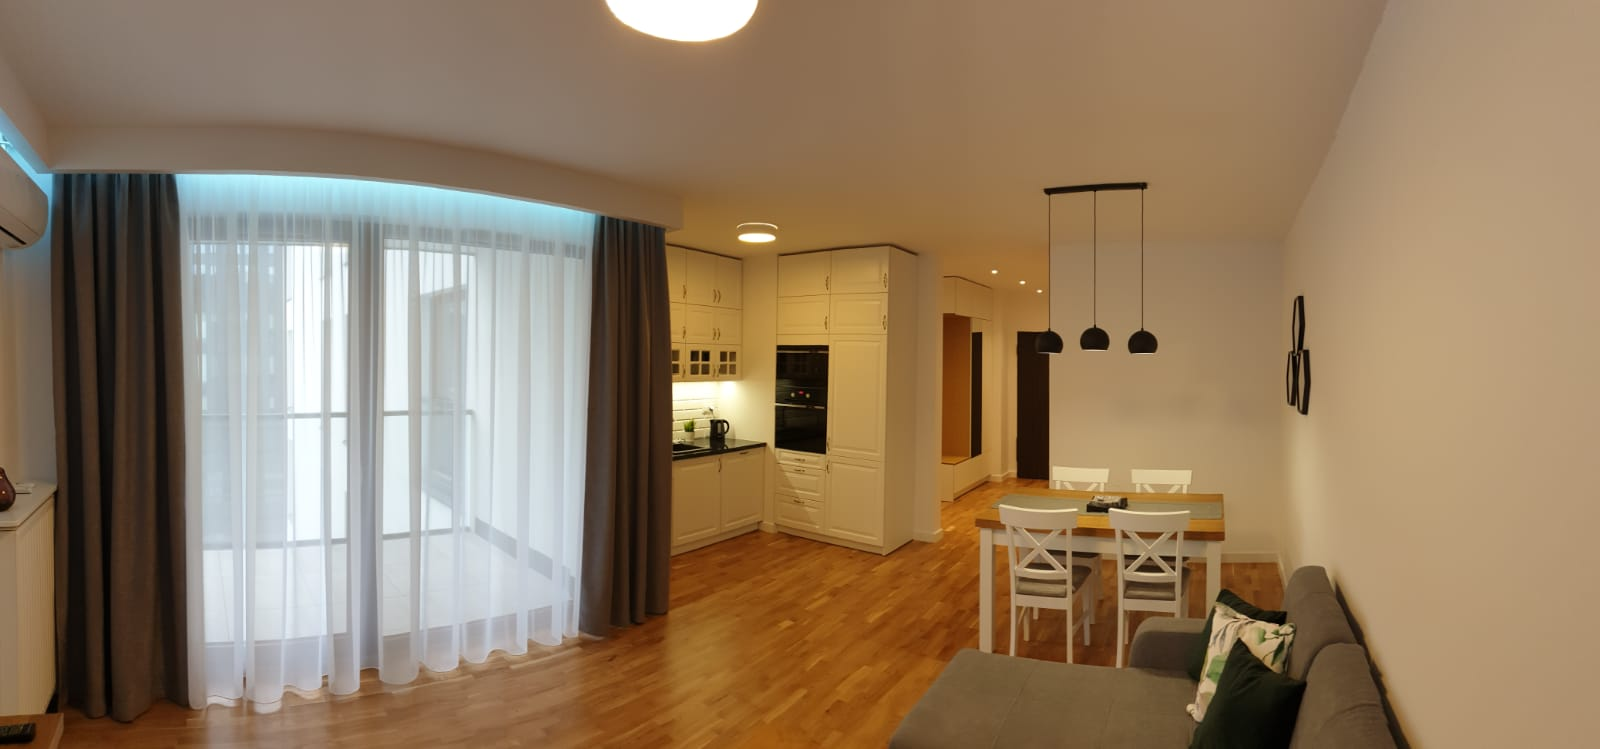 Newly Two bedrooms city centre apartment to rent in Warsaw, Poland